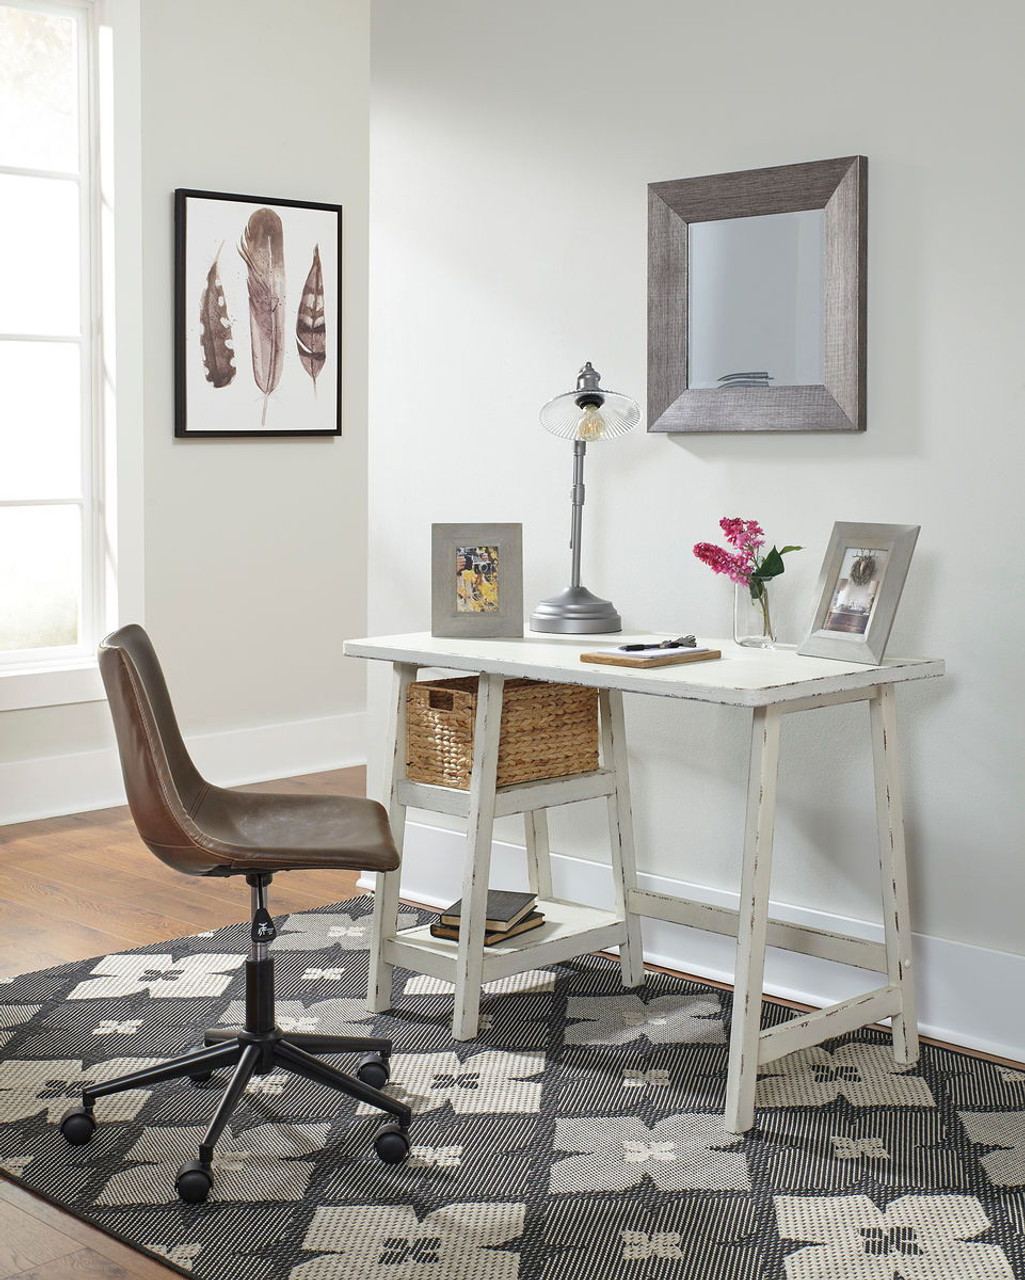 The Mirimyn Antique White Small Desk Swivel Desk Chair Available At Ritz Furniture Planet Serving Mississauga On